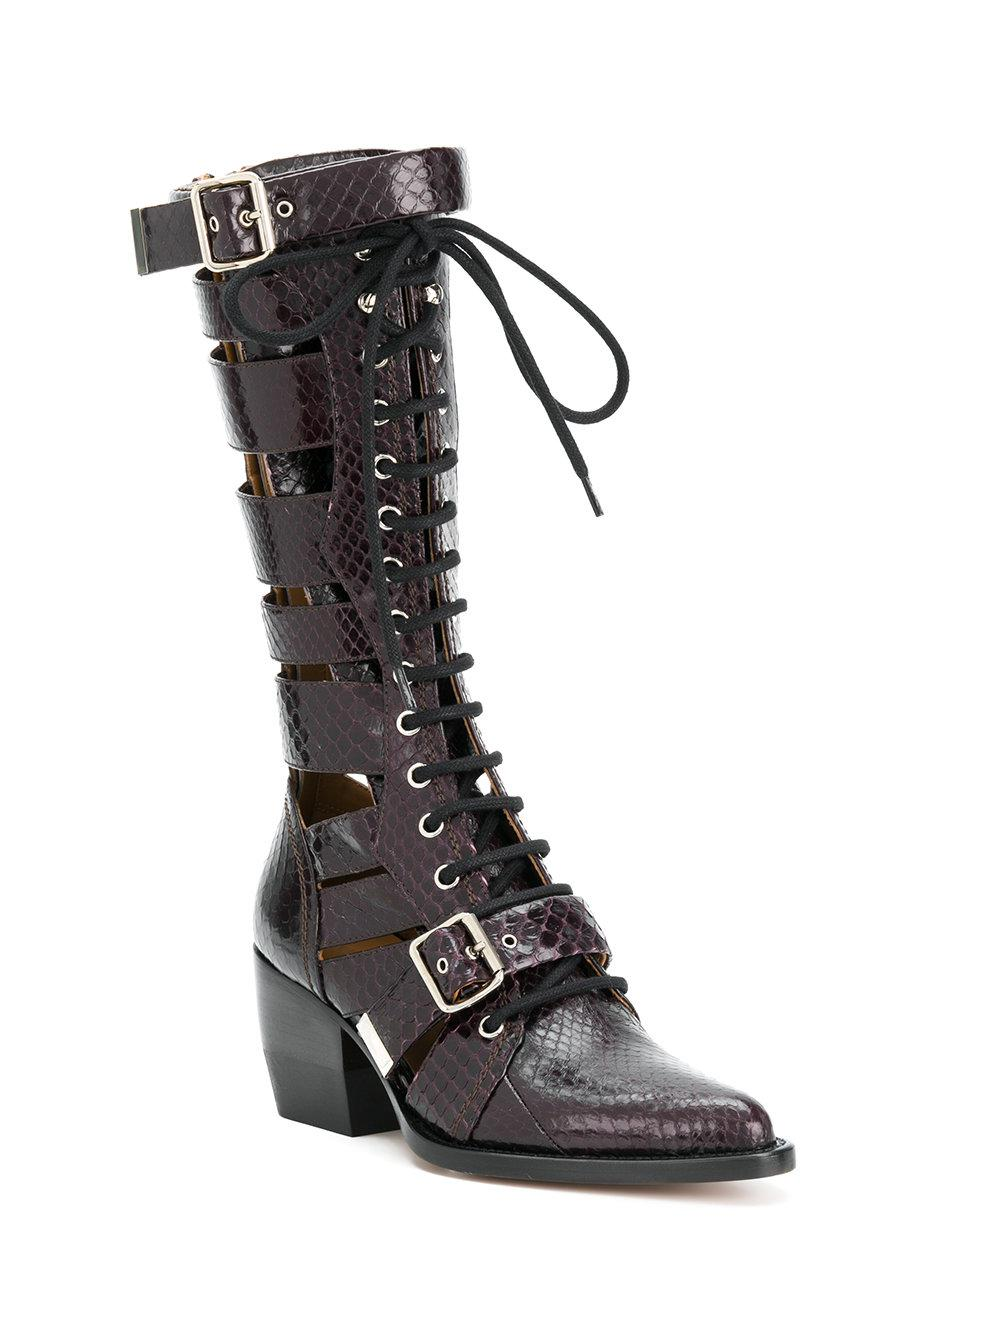 Chlo 233 Leather Rylee Boots In Red Lyst